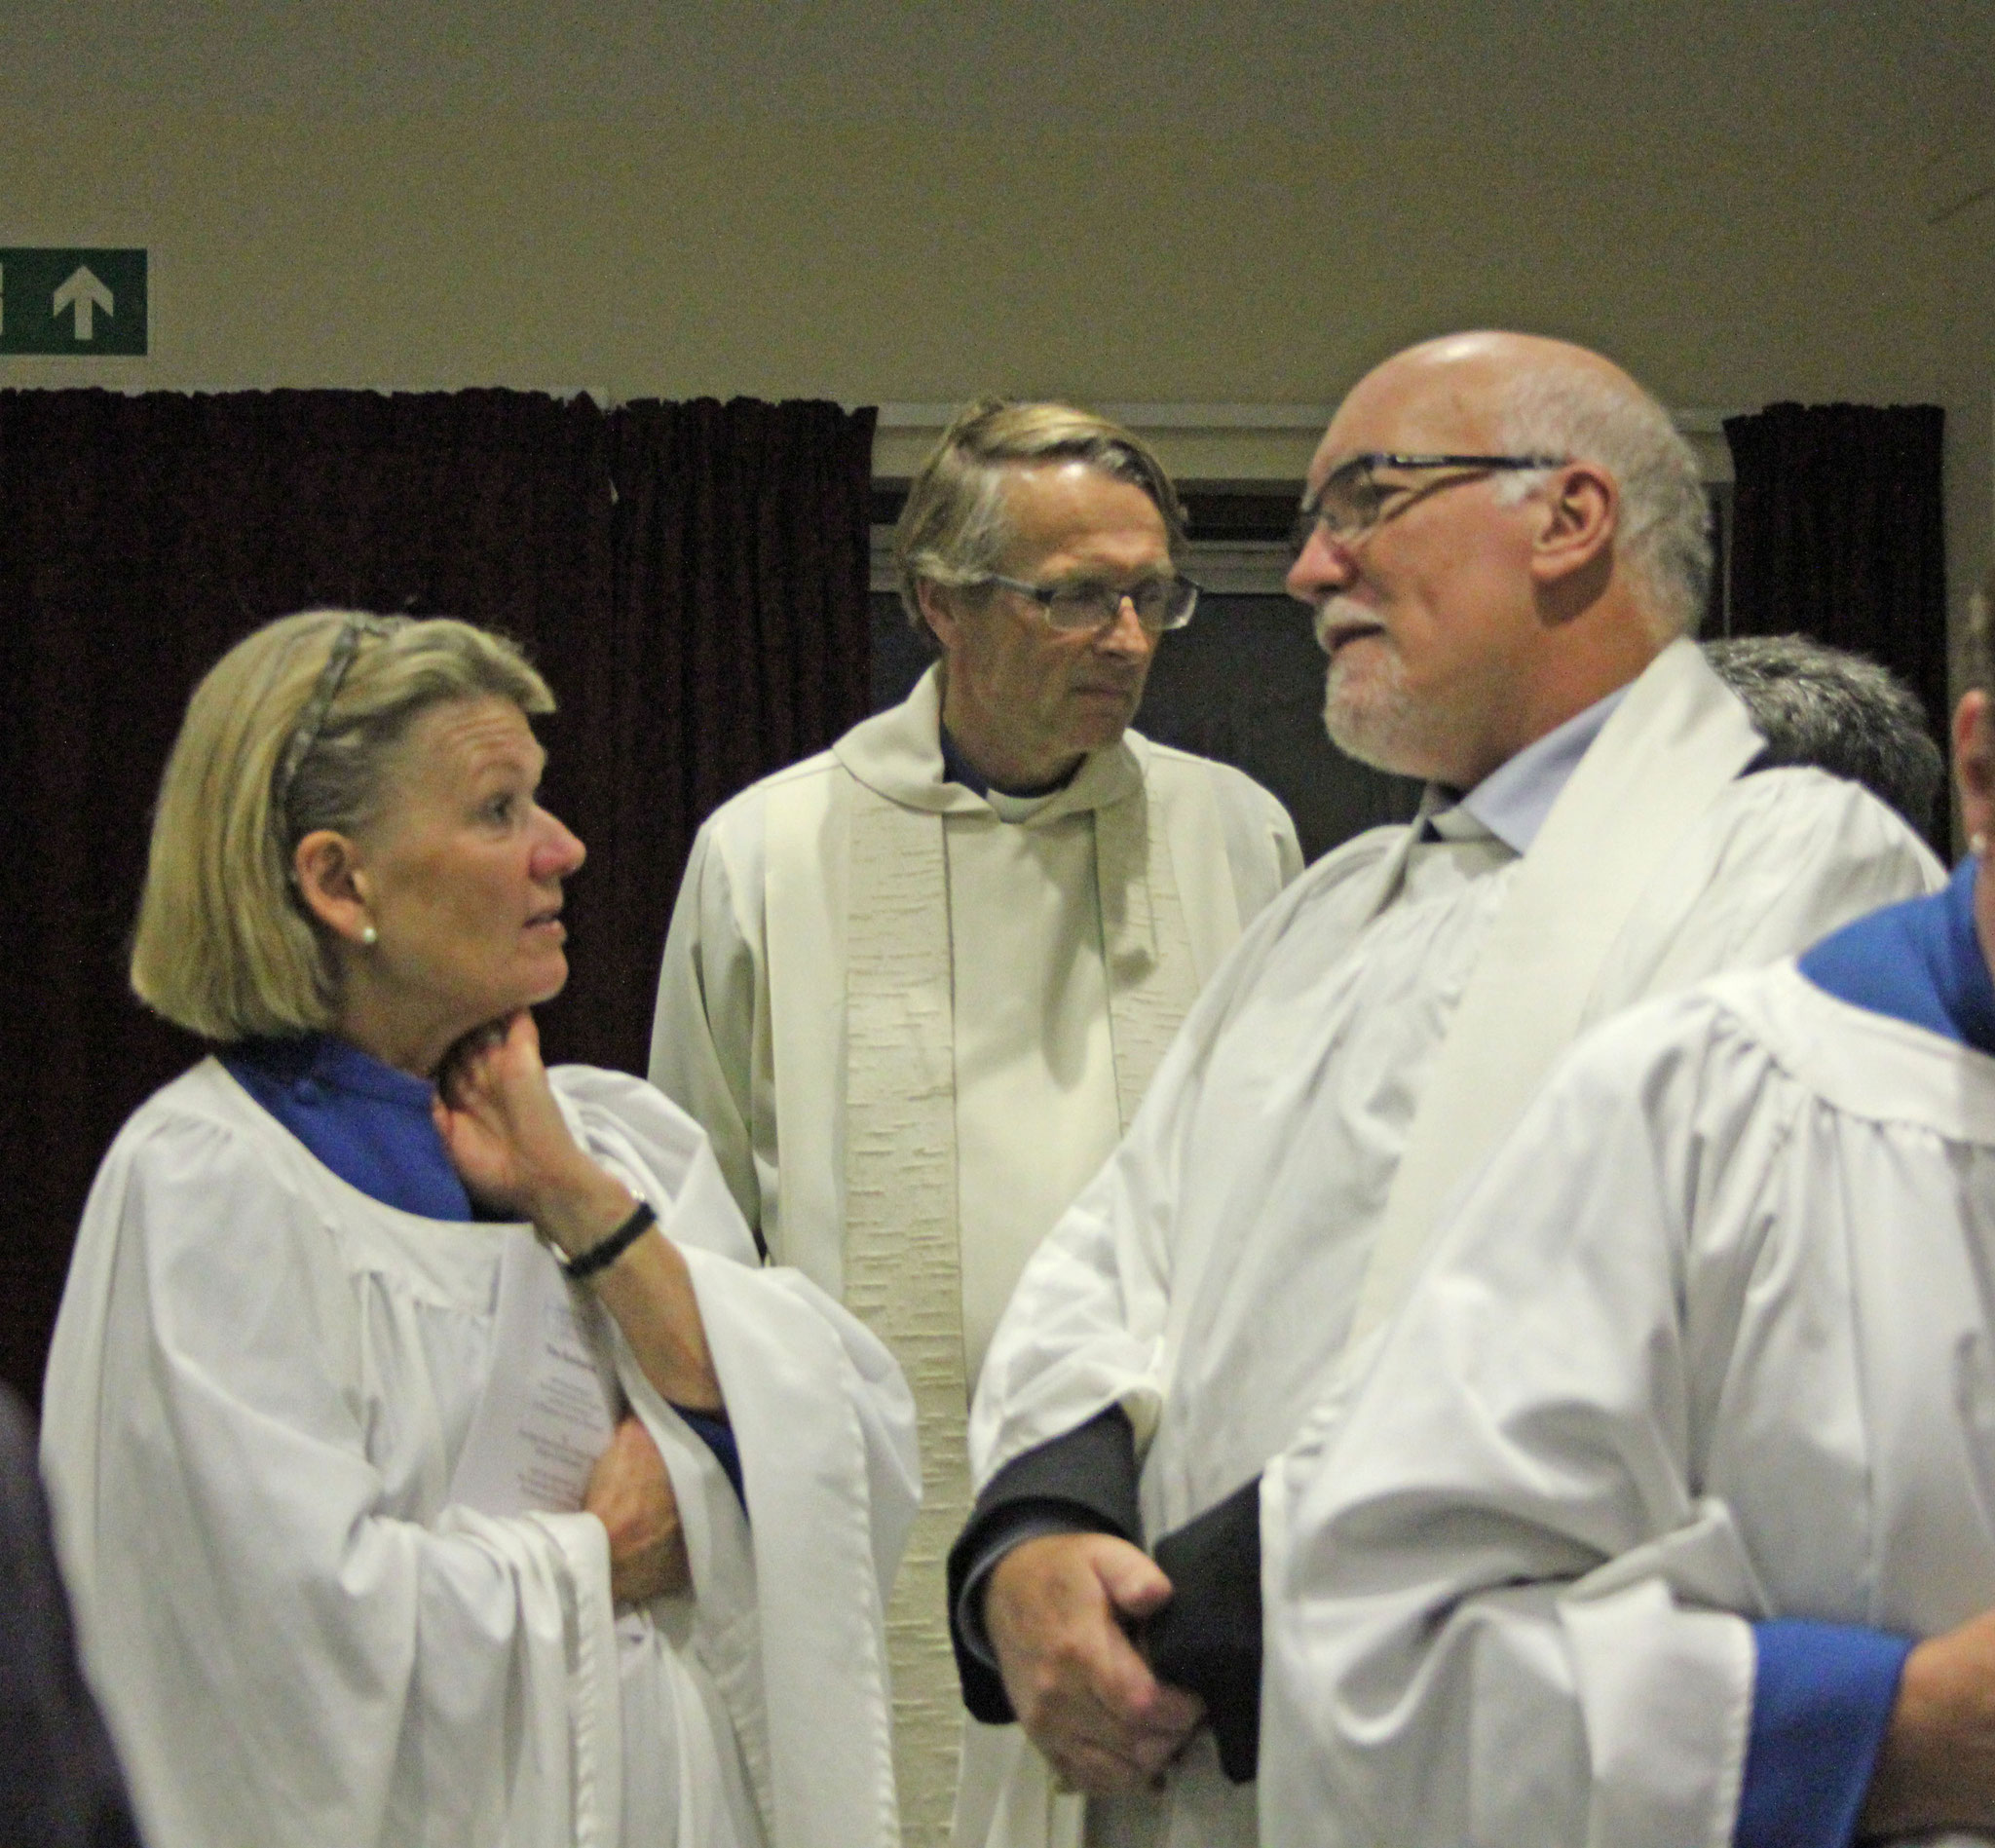 Before the service